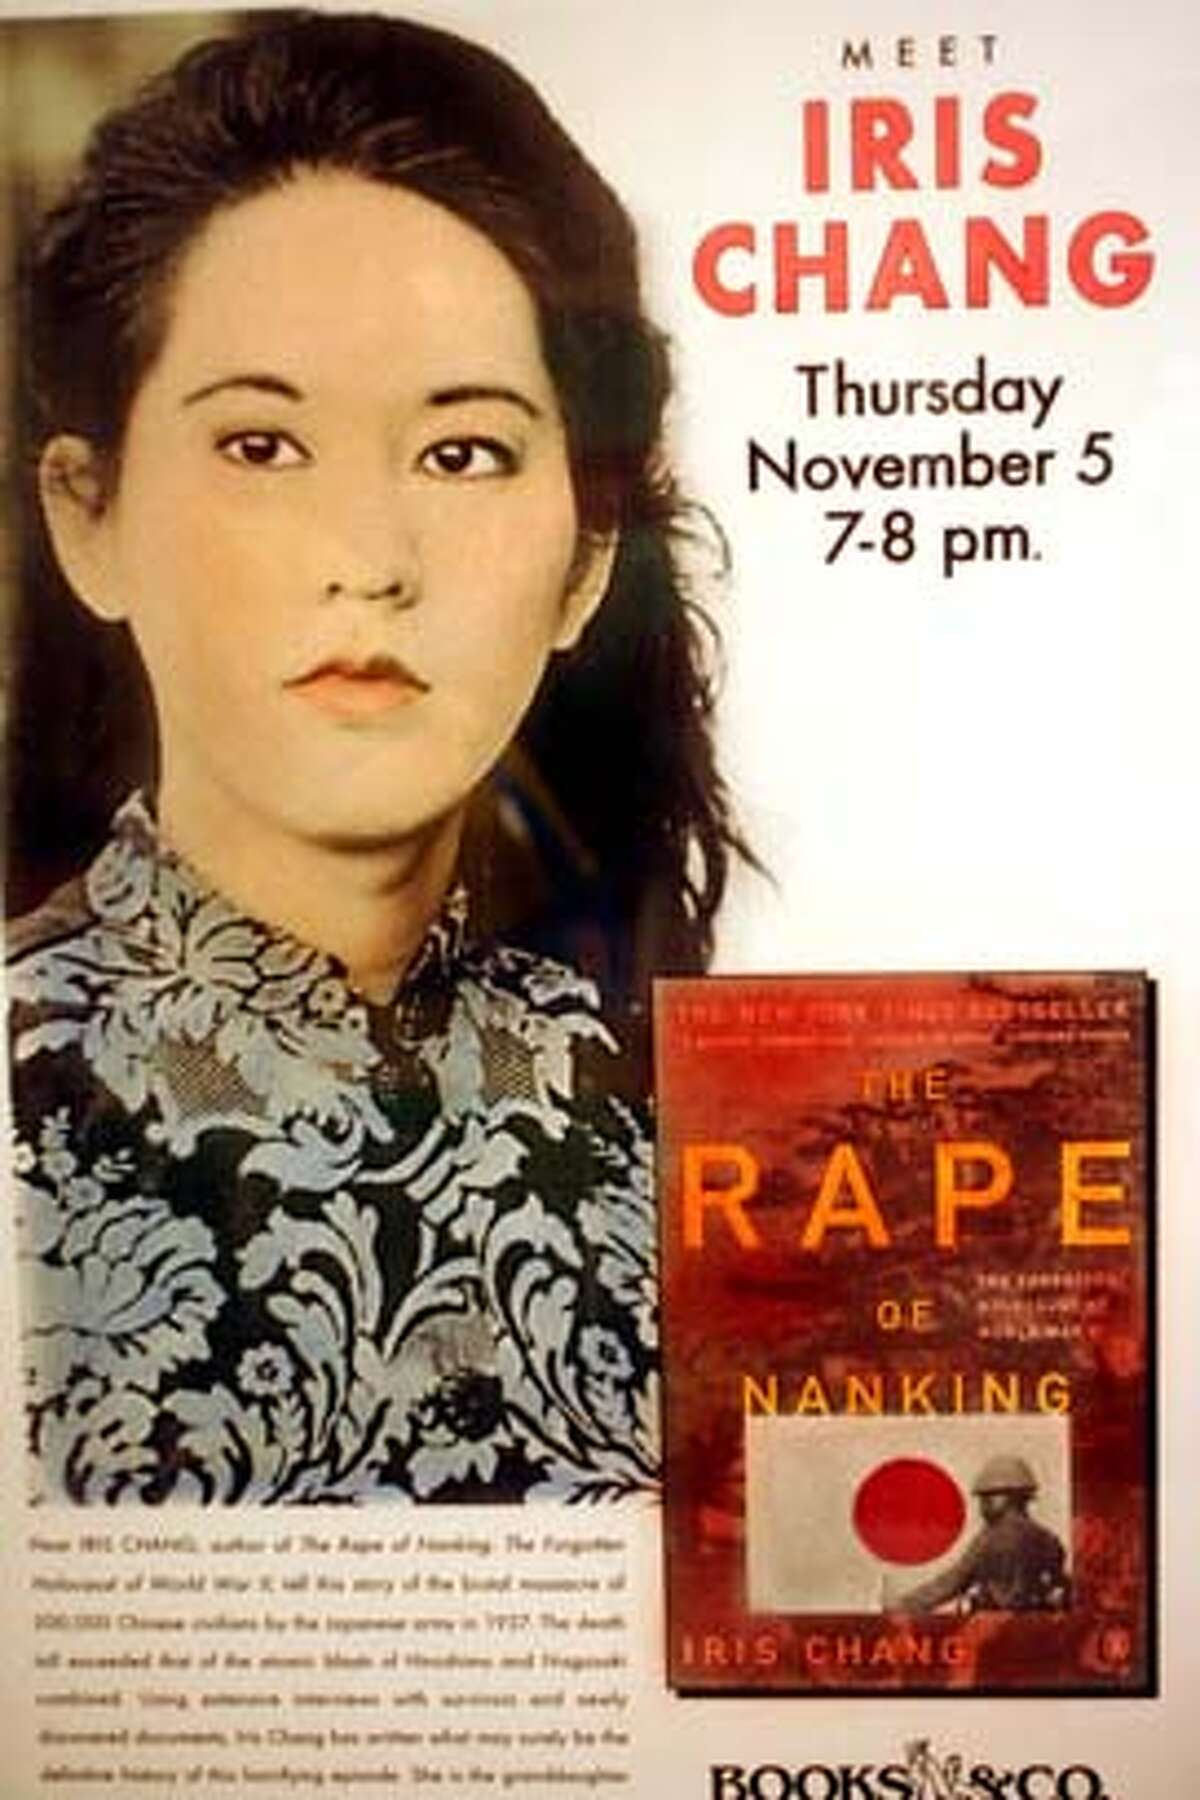 Event on 11/16/04 in San Jose. copy photo of a poster promoting Iris Chang's book